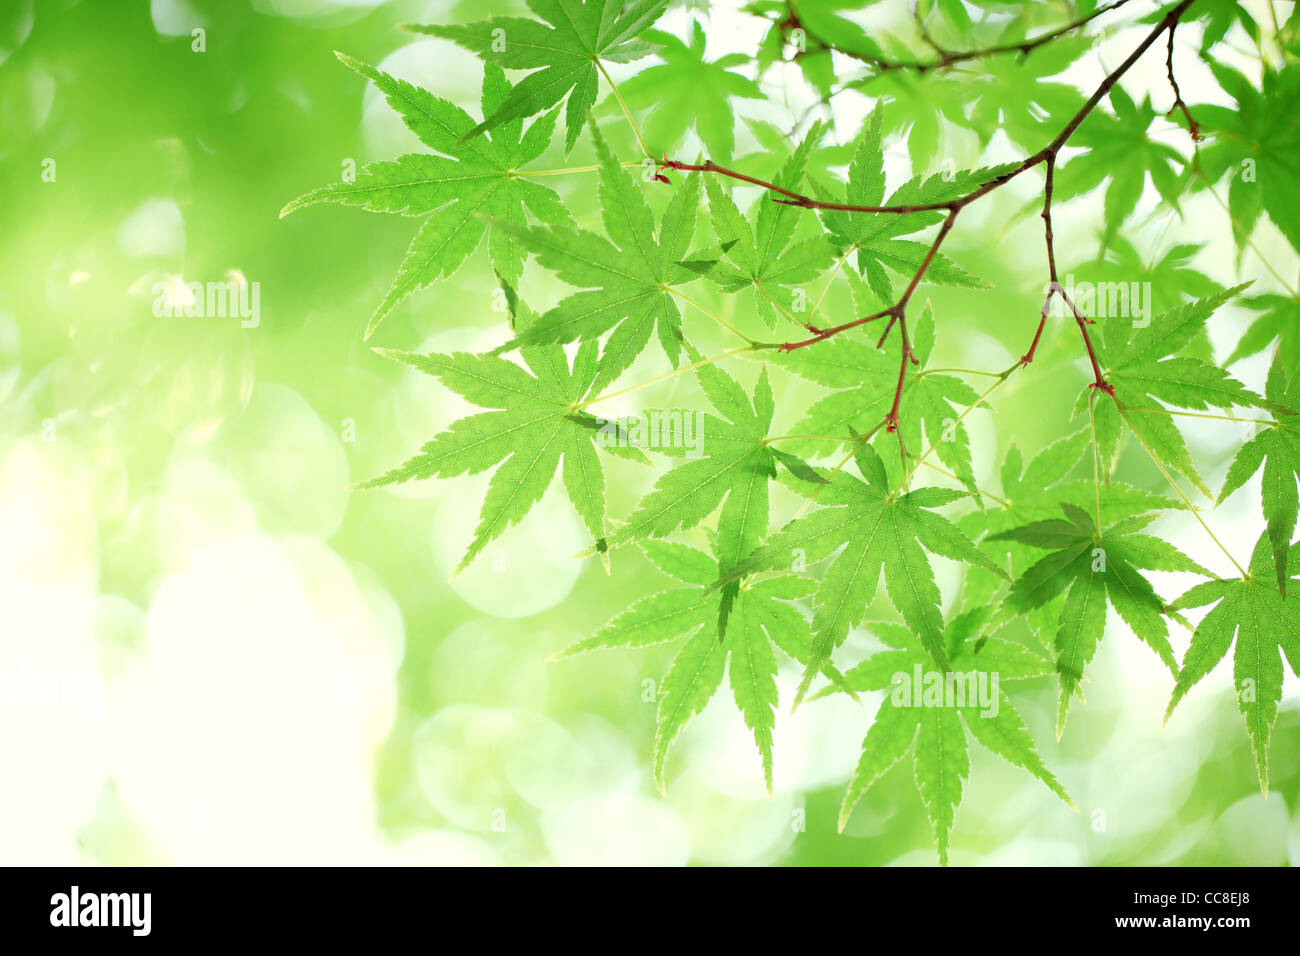 green maple leaves, shallow focus. - Stock Image